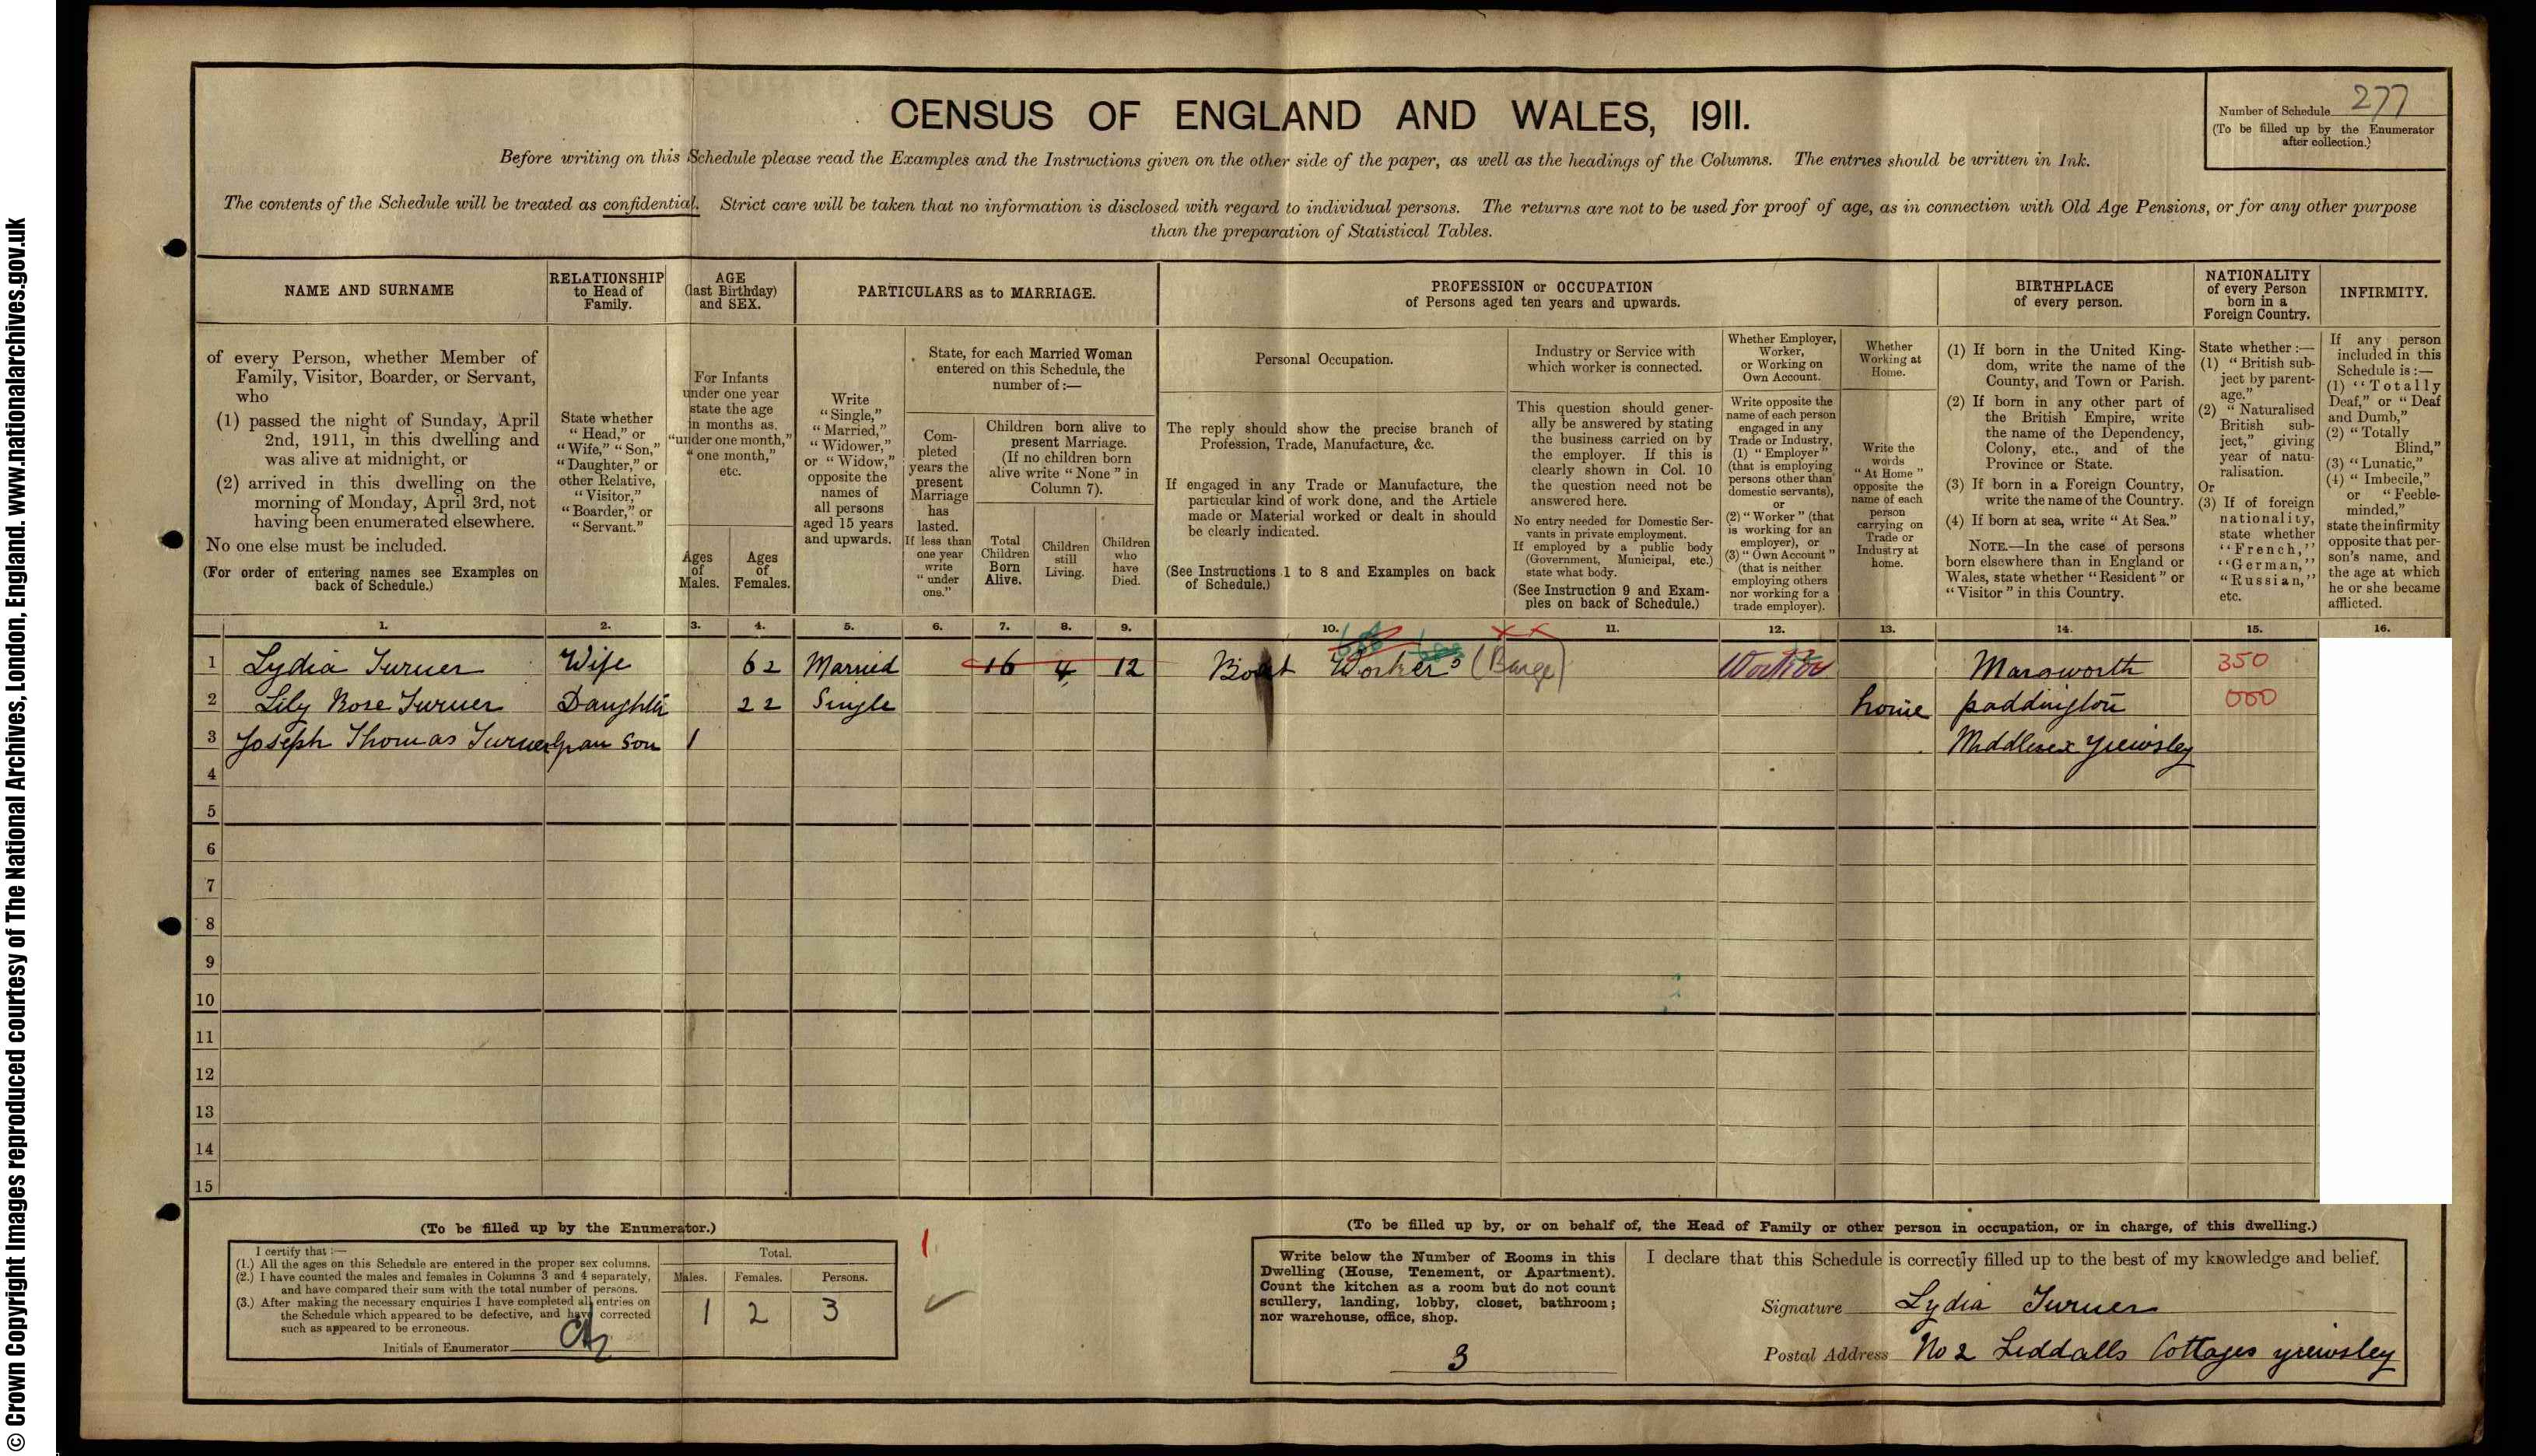 1911 England Census Record for Lydia Turner